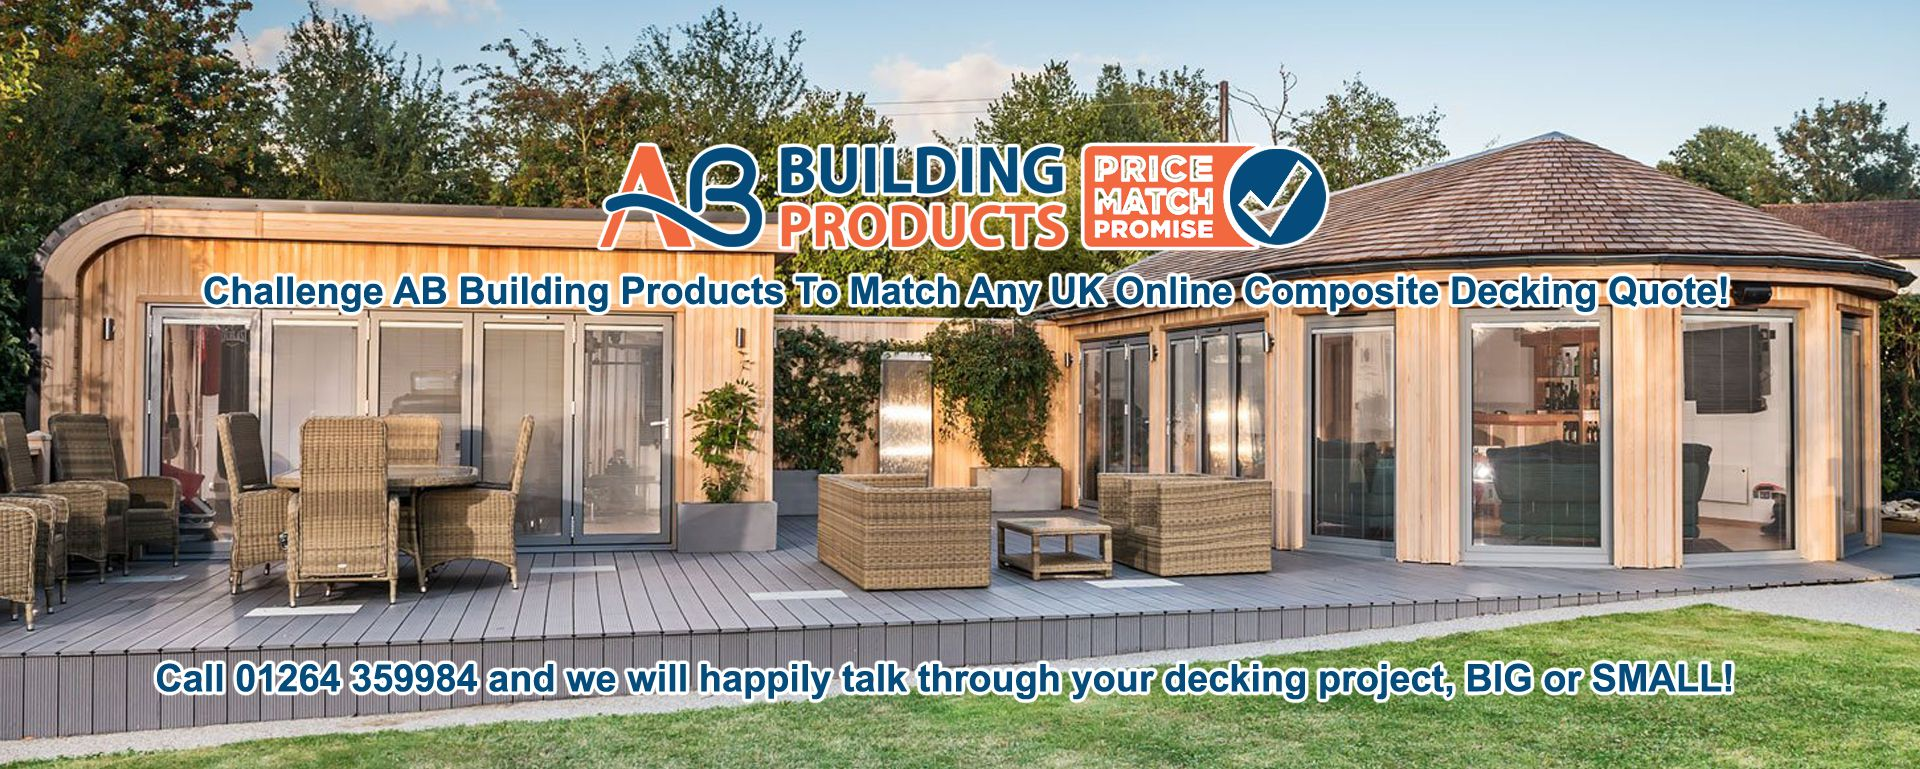 Decking Homepage Banner